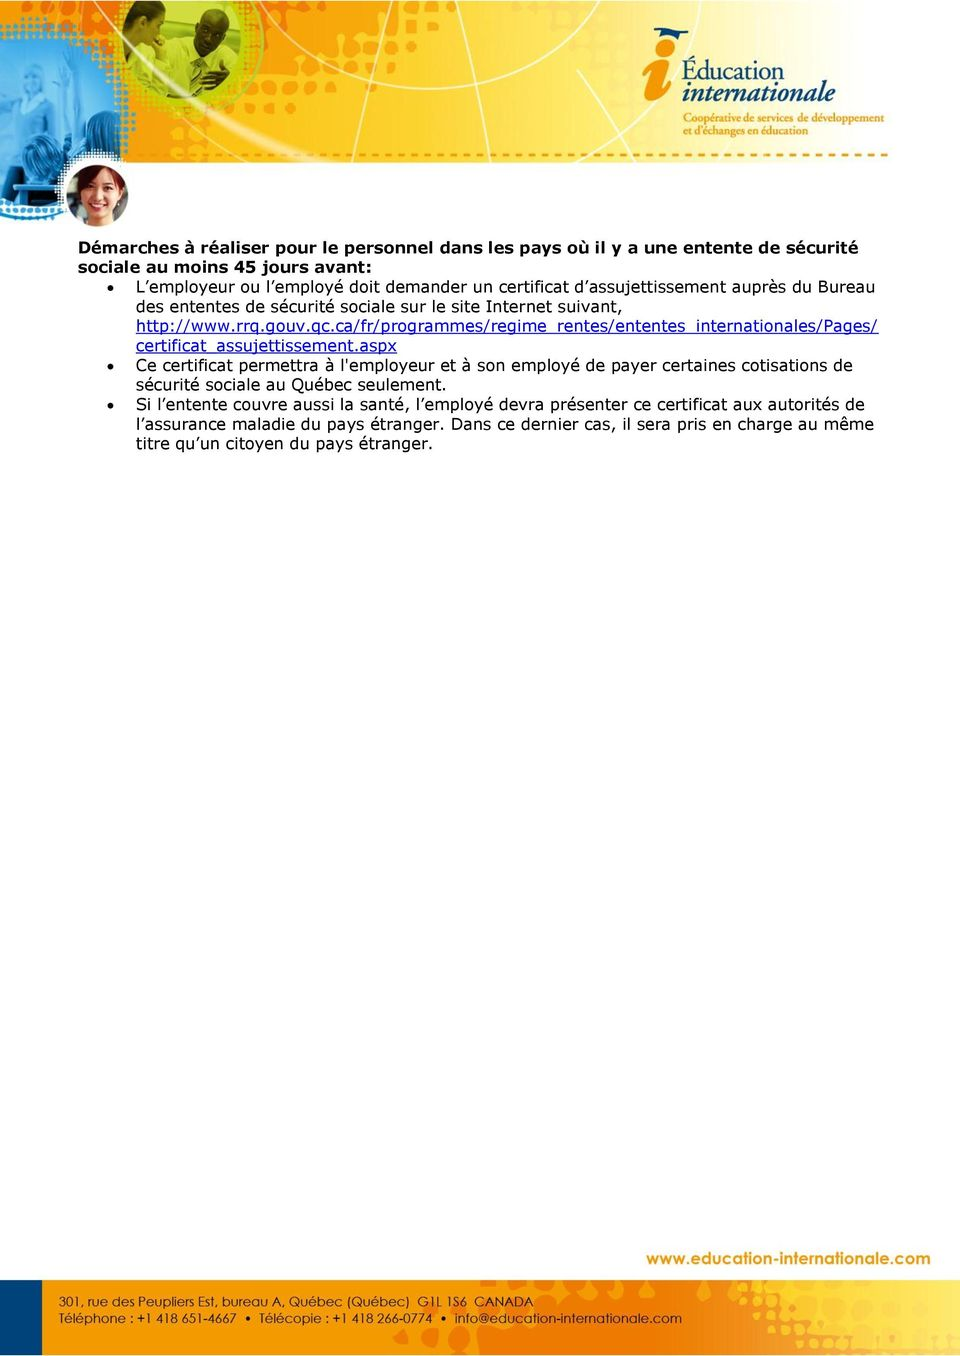 ca/fr/prgrammes/regime_rentes/ententes_internatinales/pages/ certificat_assujettissement.